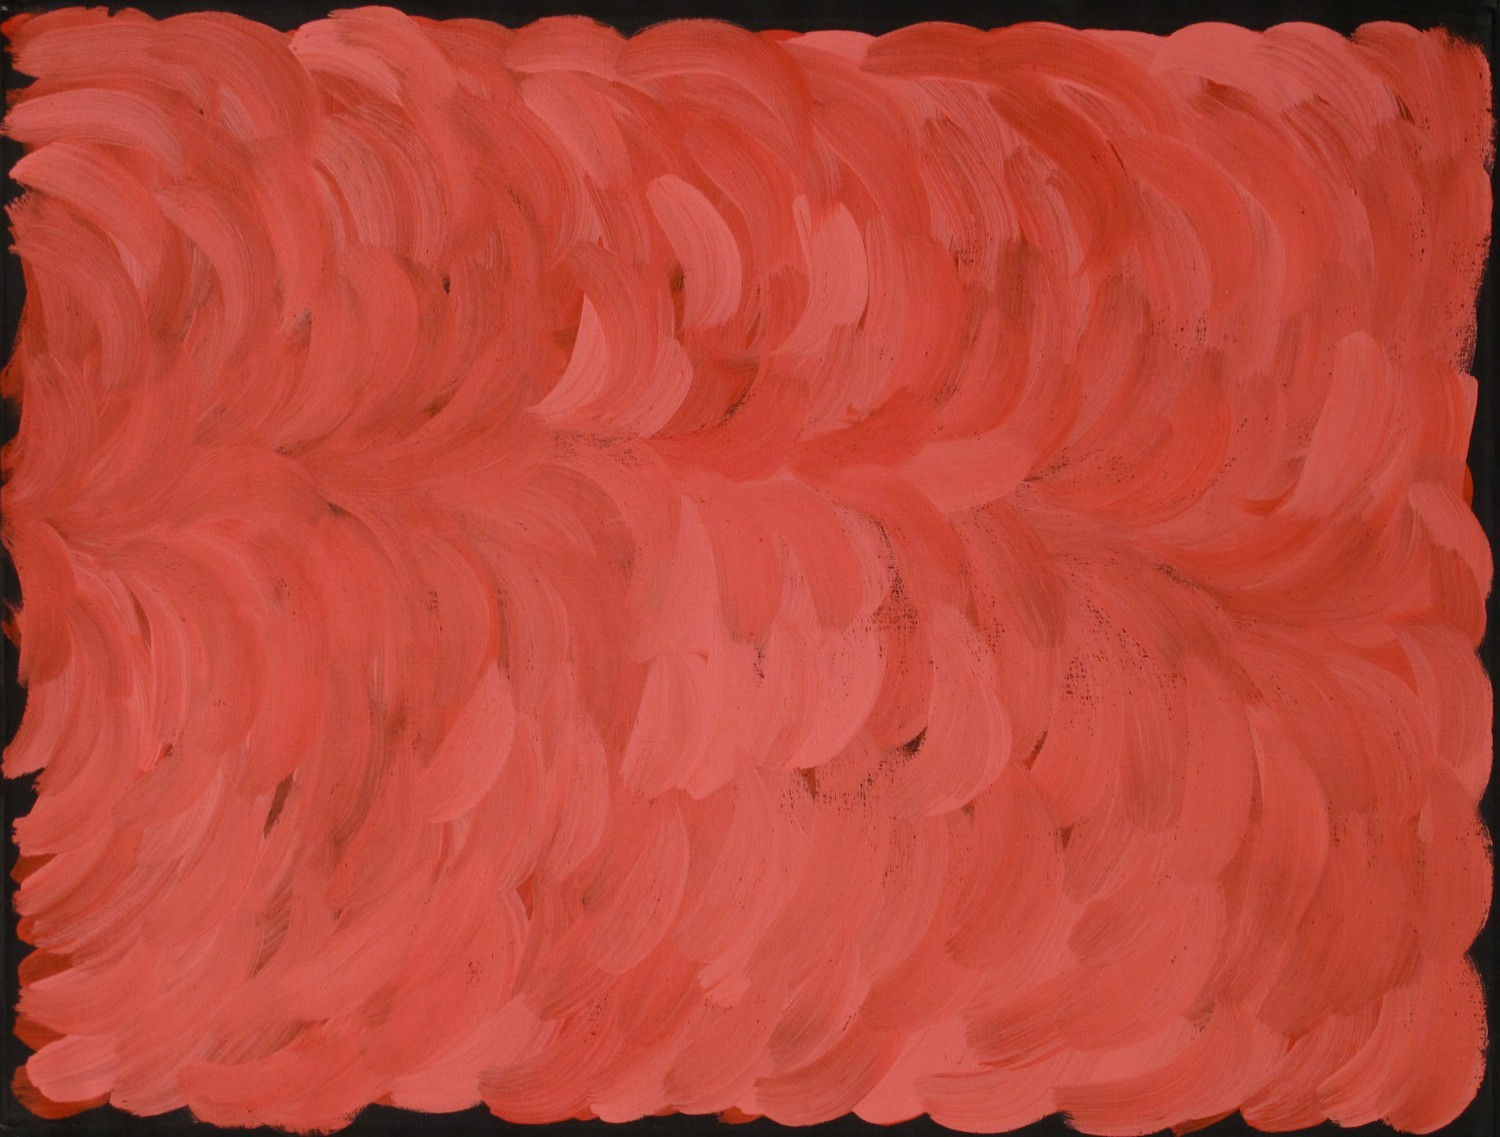 10136. Gloria Petyarre. Leaves 90x119cm Was $5,500 Now $3850 (one of her very first big brush works)